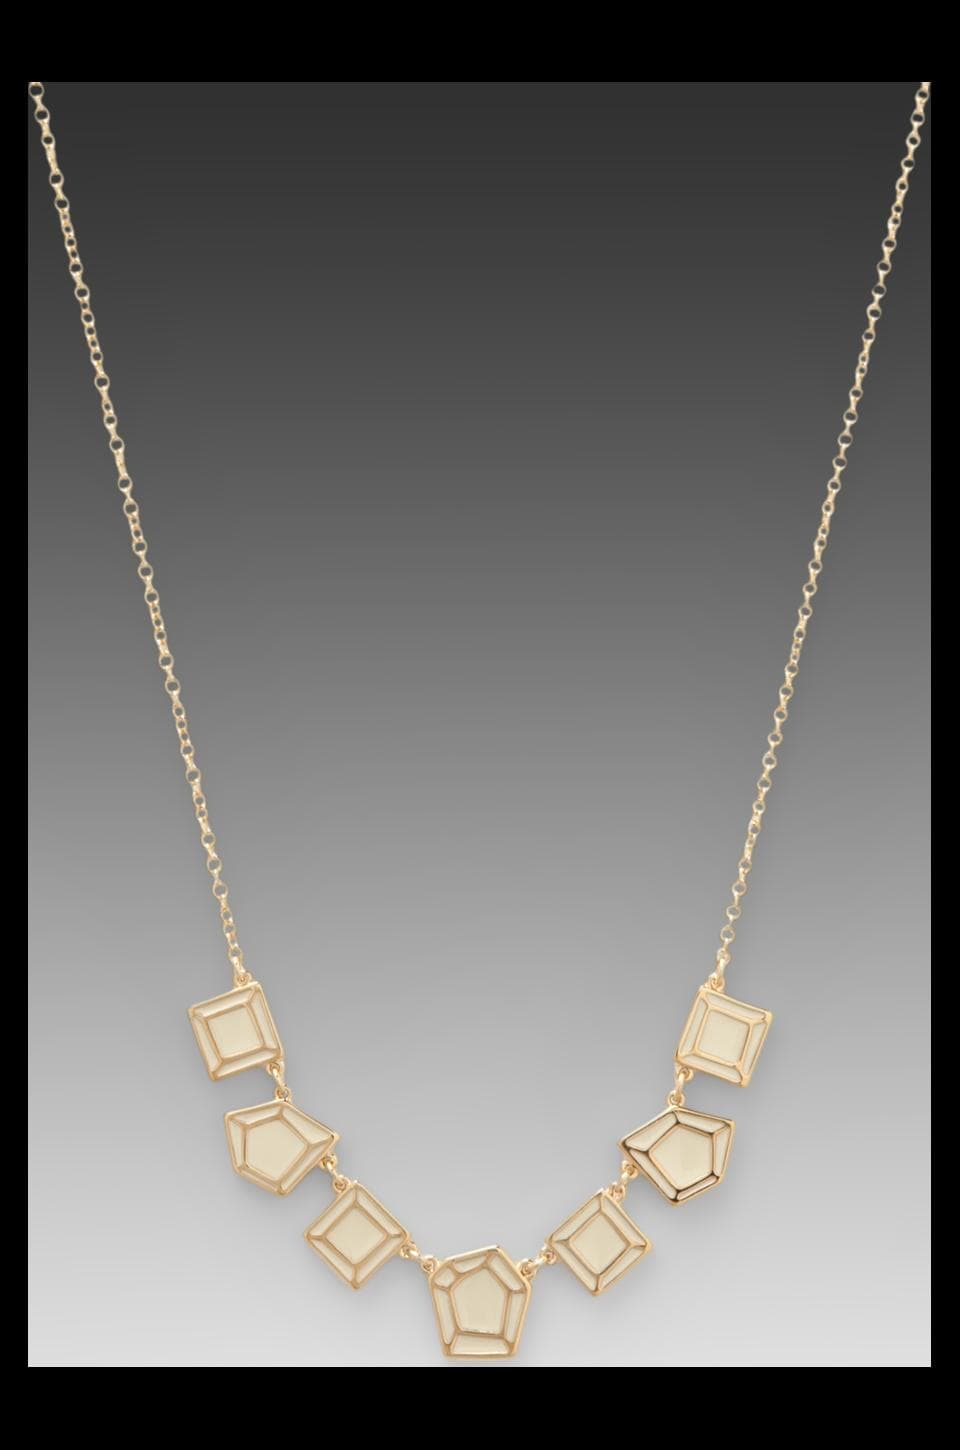 Marc by Marc Jacobs Gem Slices Multi Necklace in Cream/Oro